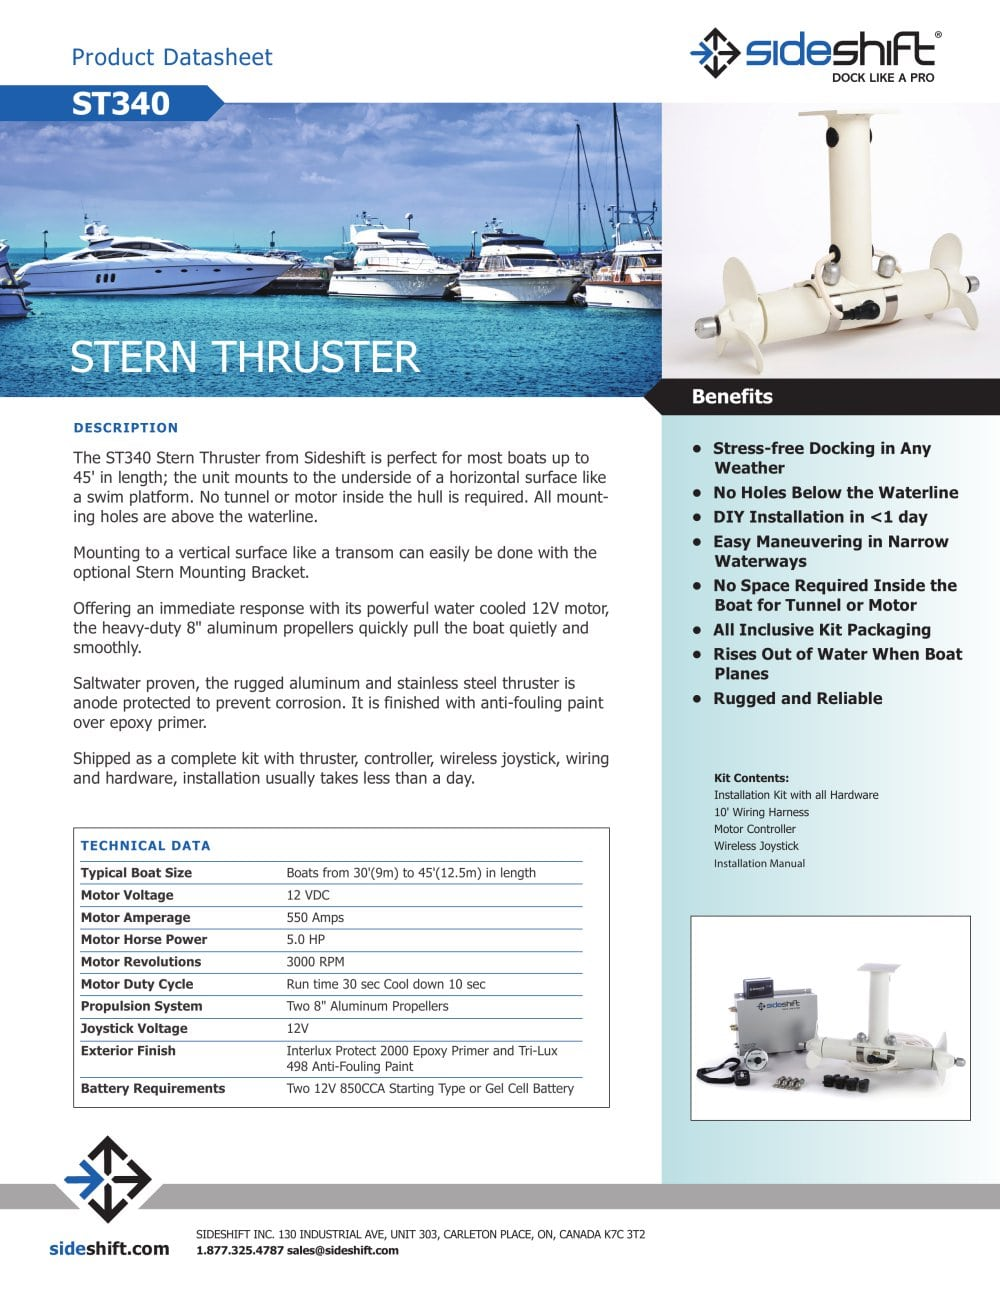 ST340 - Sideshift - PDF Catalogues | Documentation | Boating Brochures